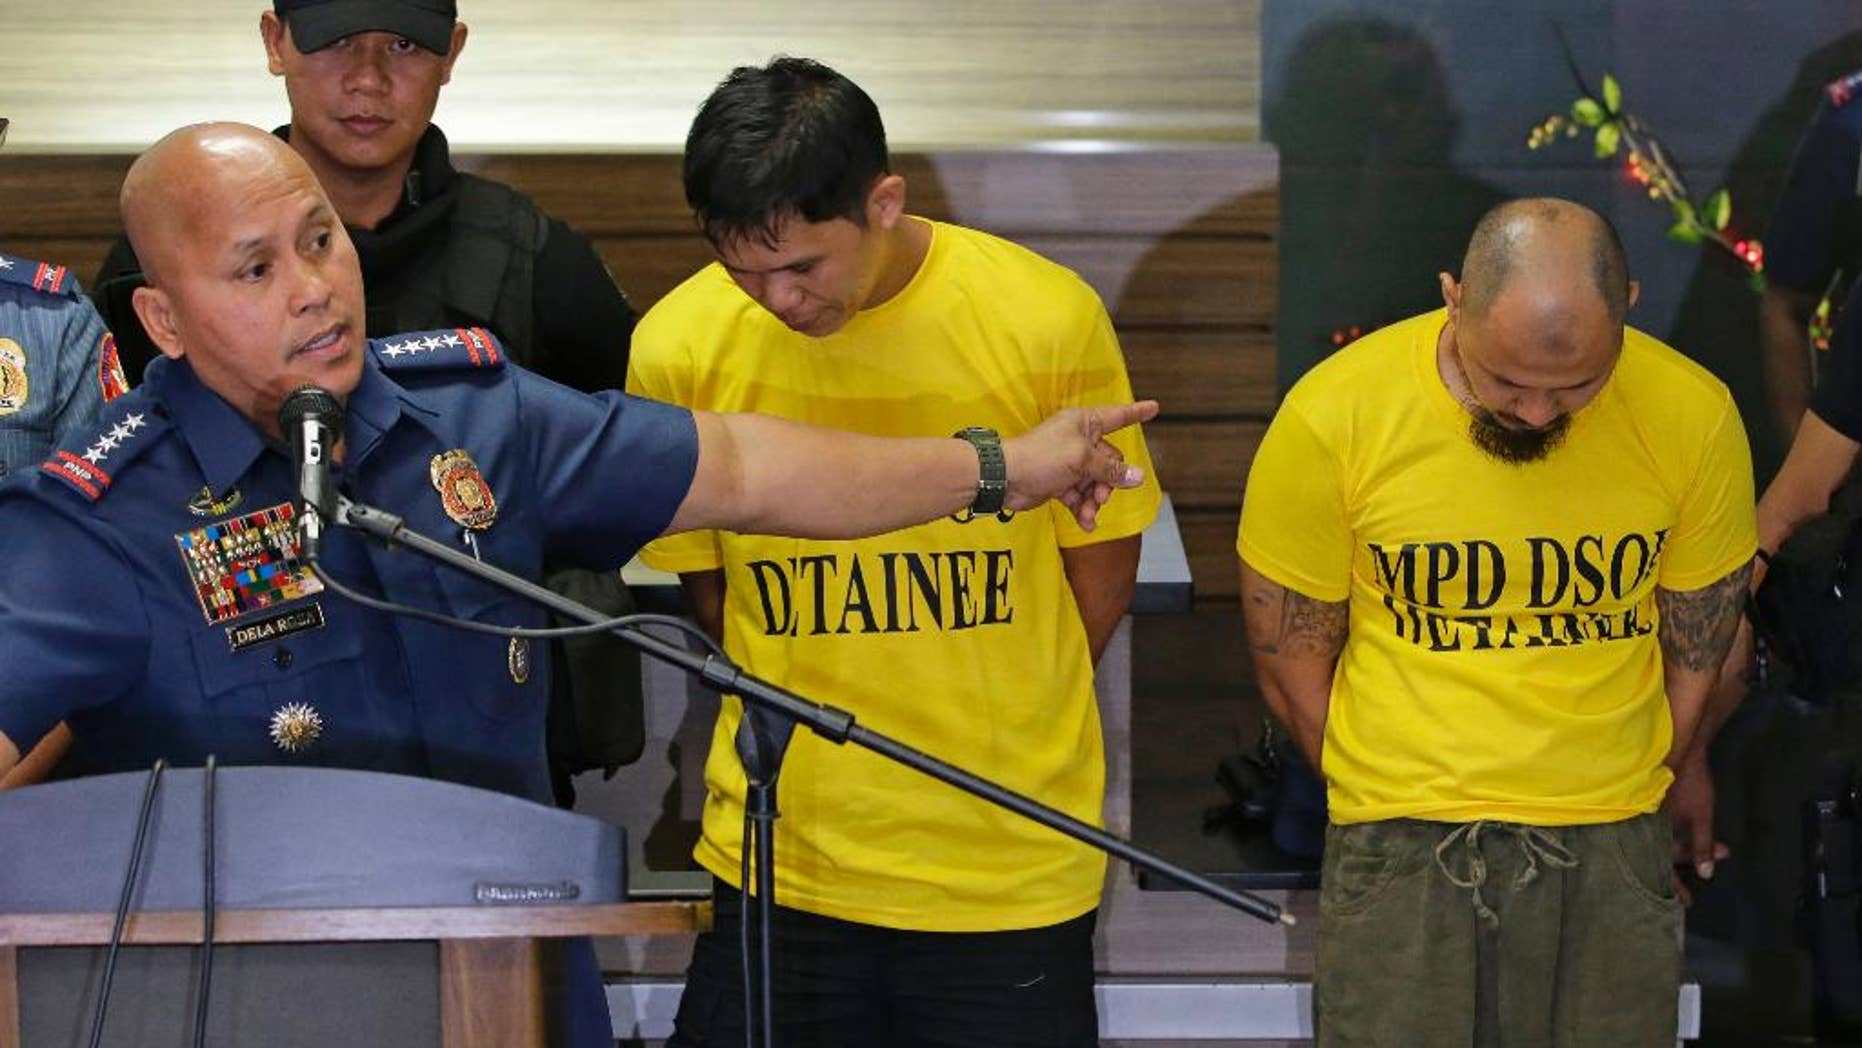 Suspects Jiaher Guinar, center, and Rashid Kilala, right, presented to reporters at police headquarters in Quezon city, north of Manila, Philippines.